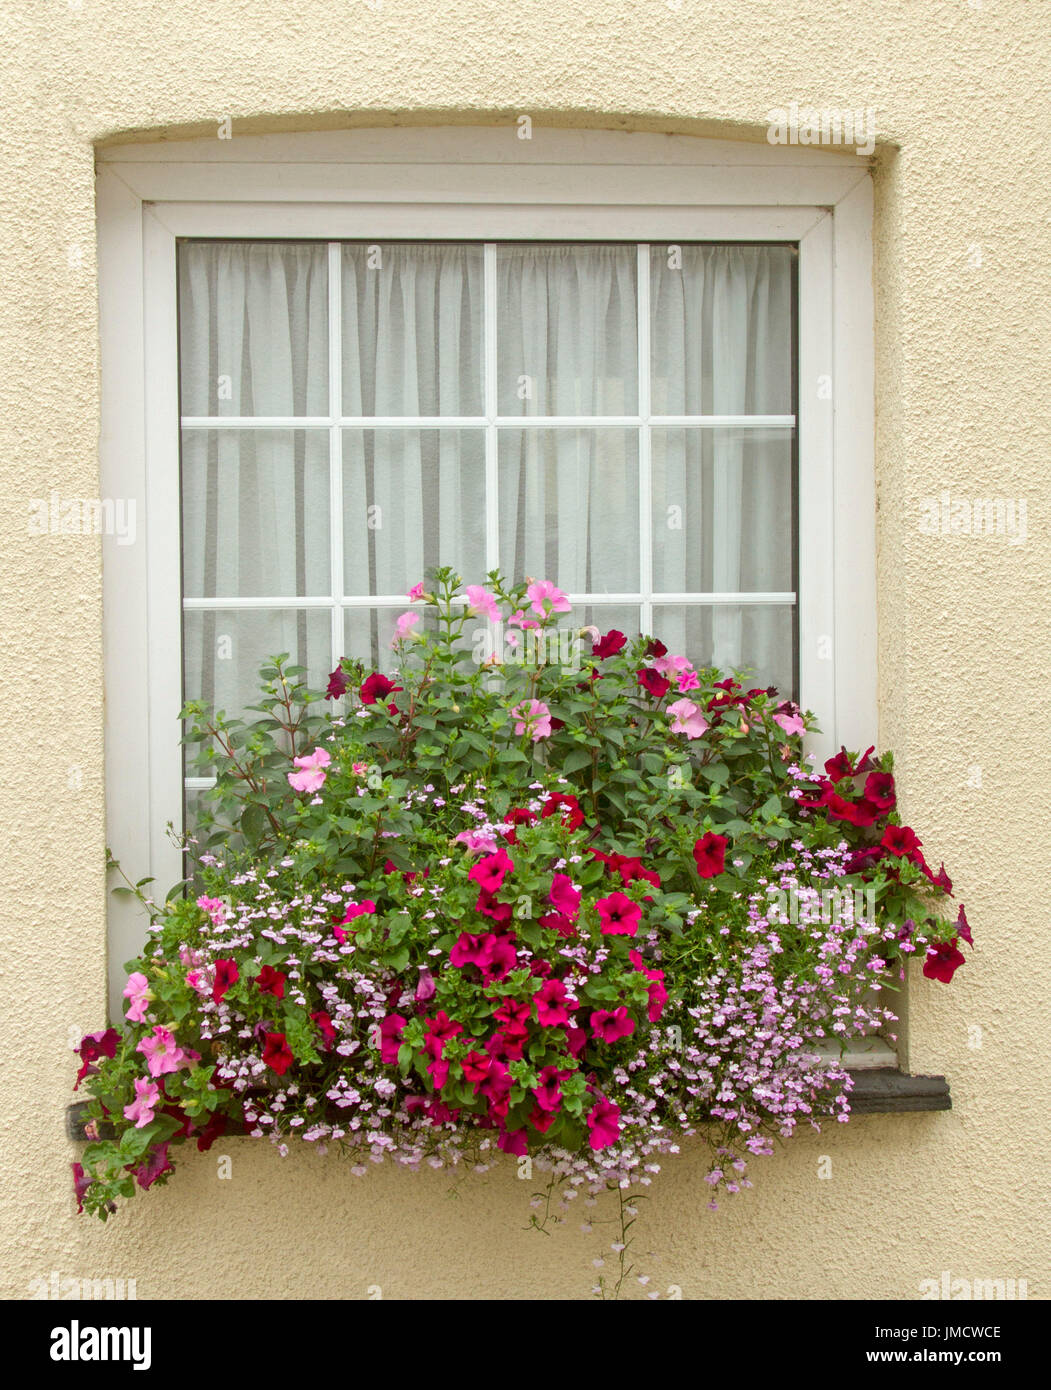 Mass of vivid coloured flowers, inc. dark red and pink petunias and pink lobelia flowers with emerald green foliage in window box against cream wall - Stock Image